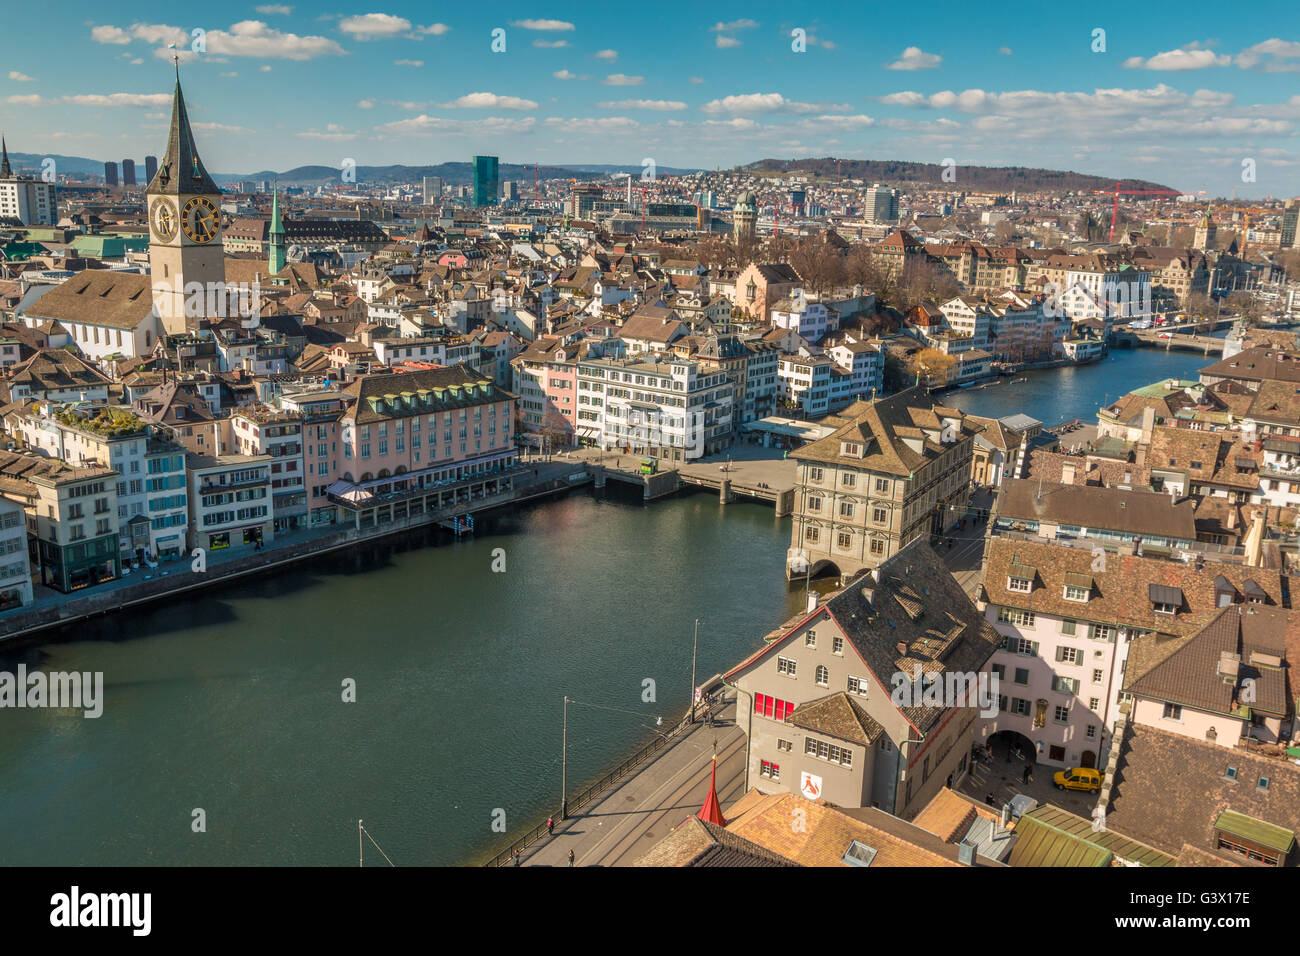 Panoramic view of Zurich - Stock Image